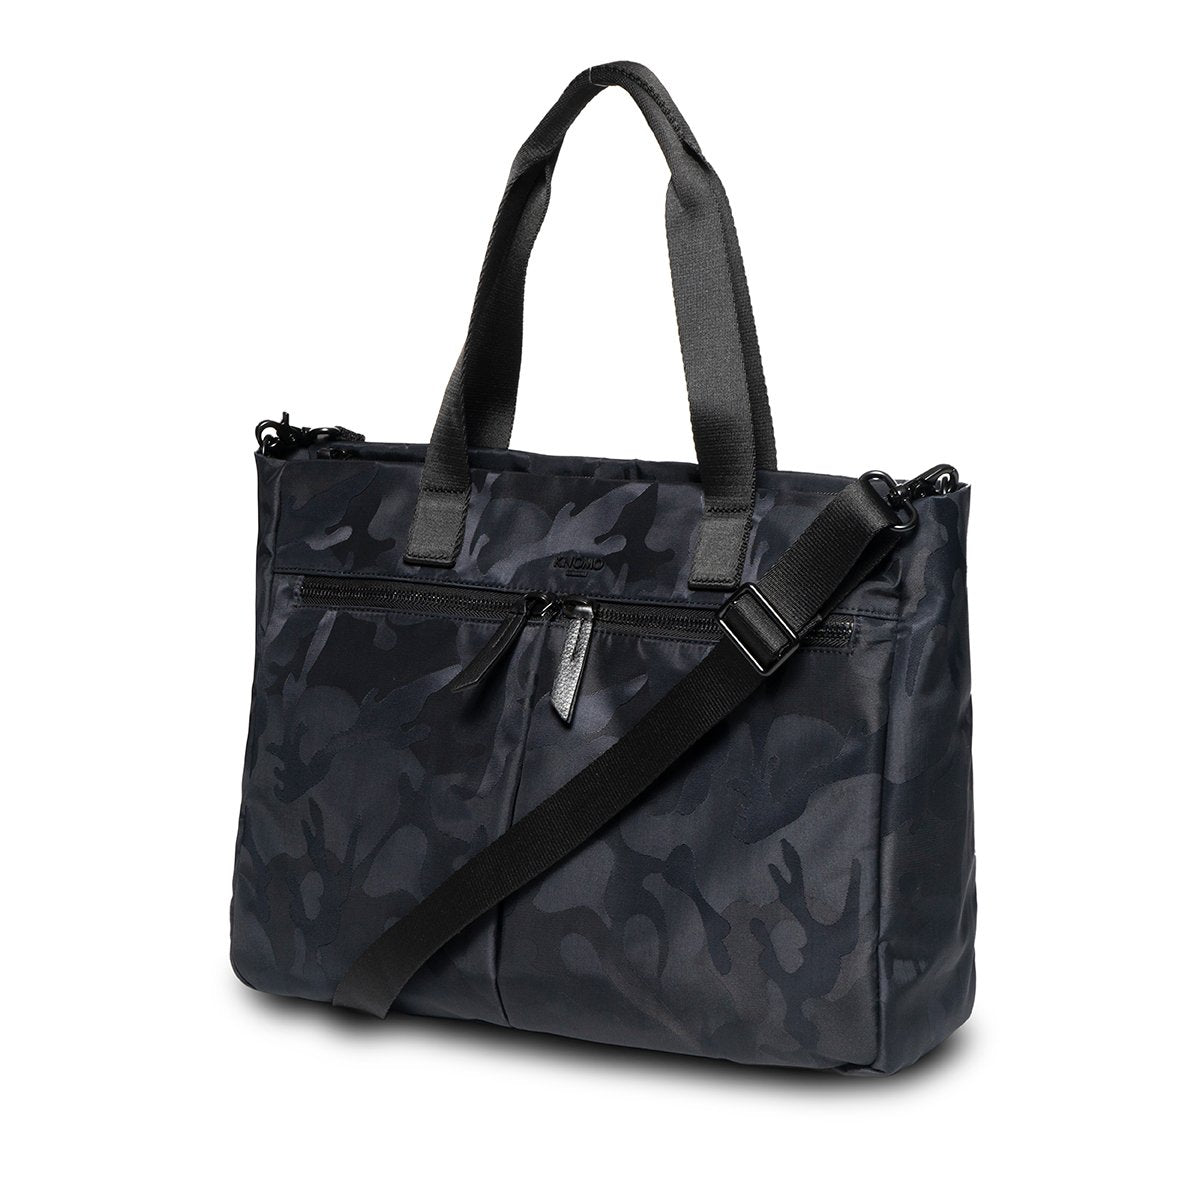 "KNOMO Cologne Tote Three Quarter View With Strap 14"" -  Black Camouflage 